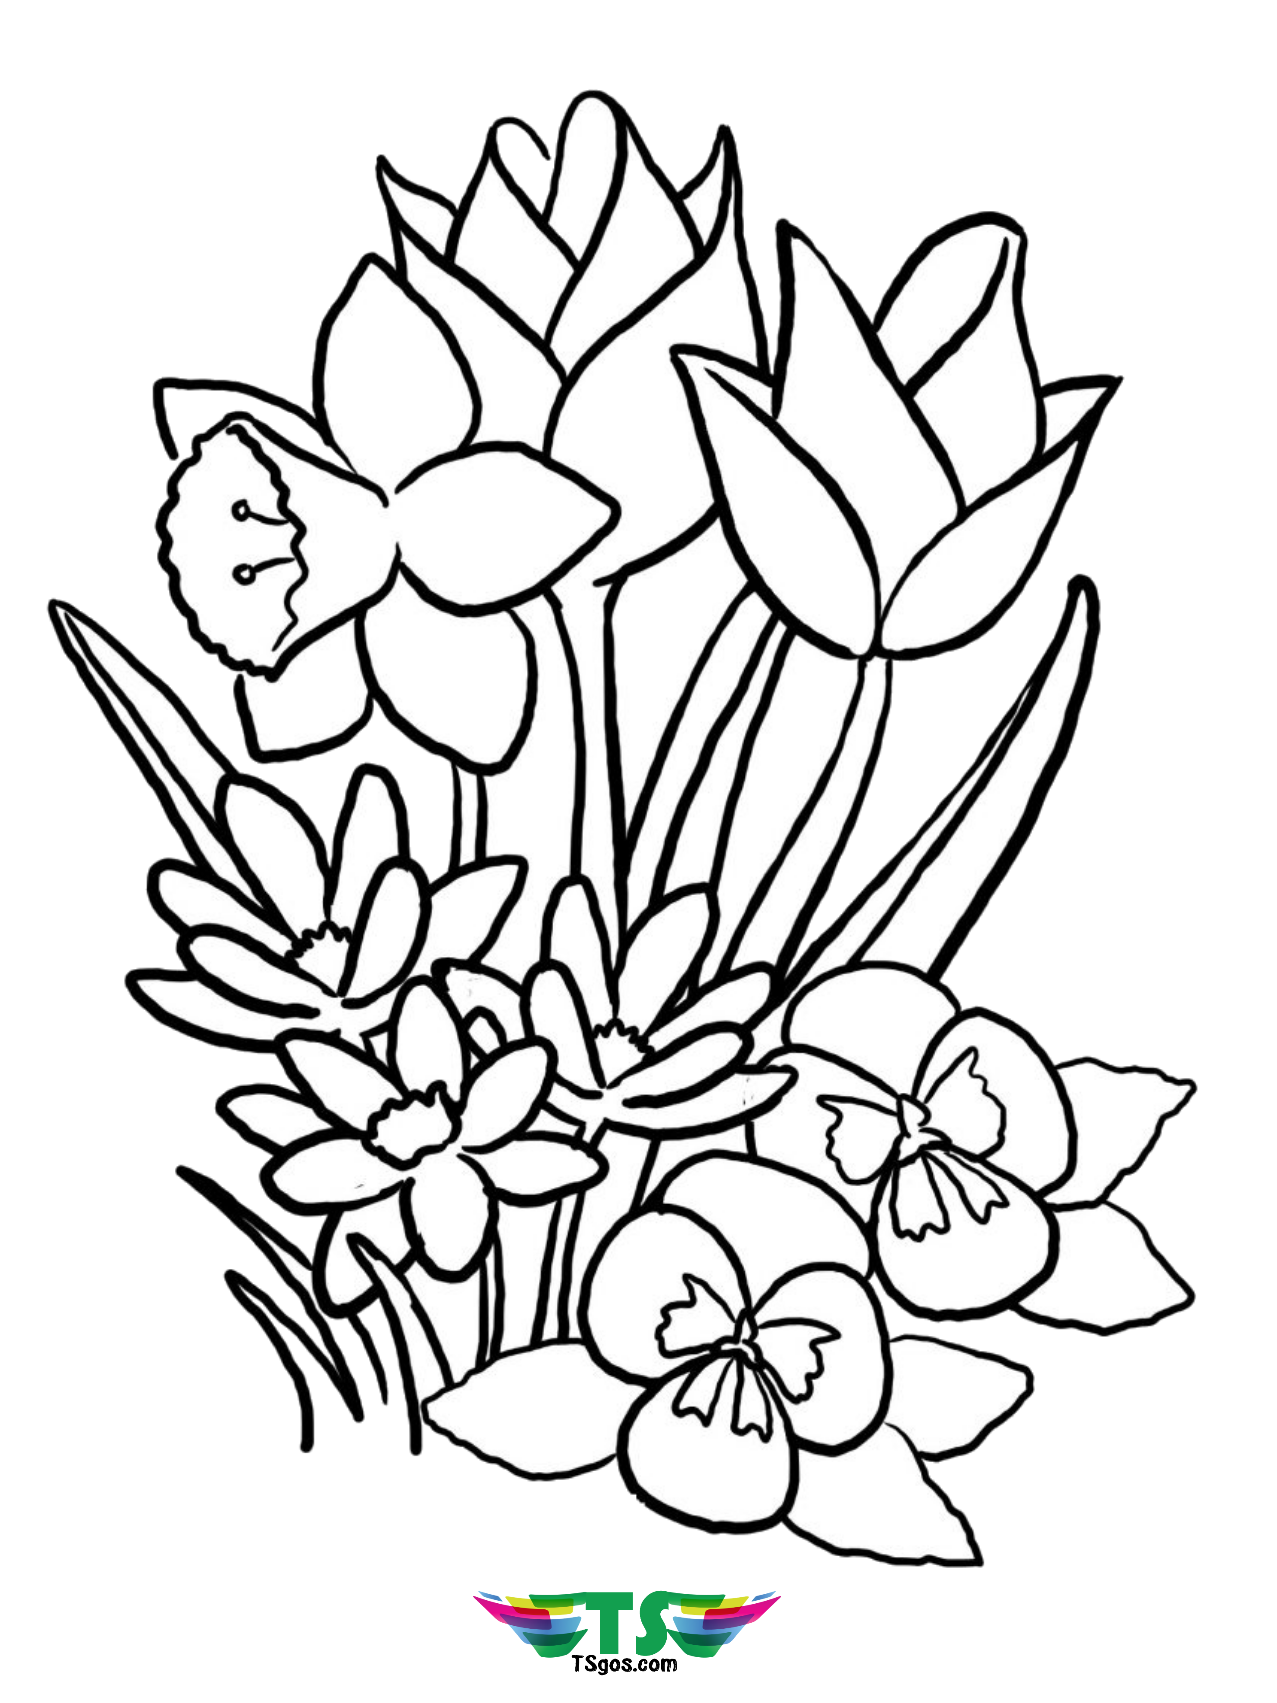 Coloring pictures of a flower